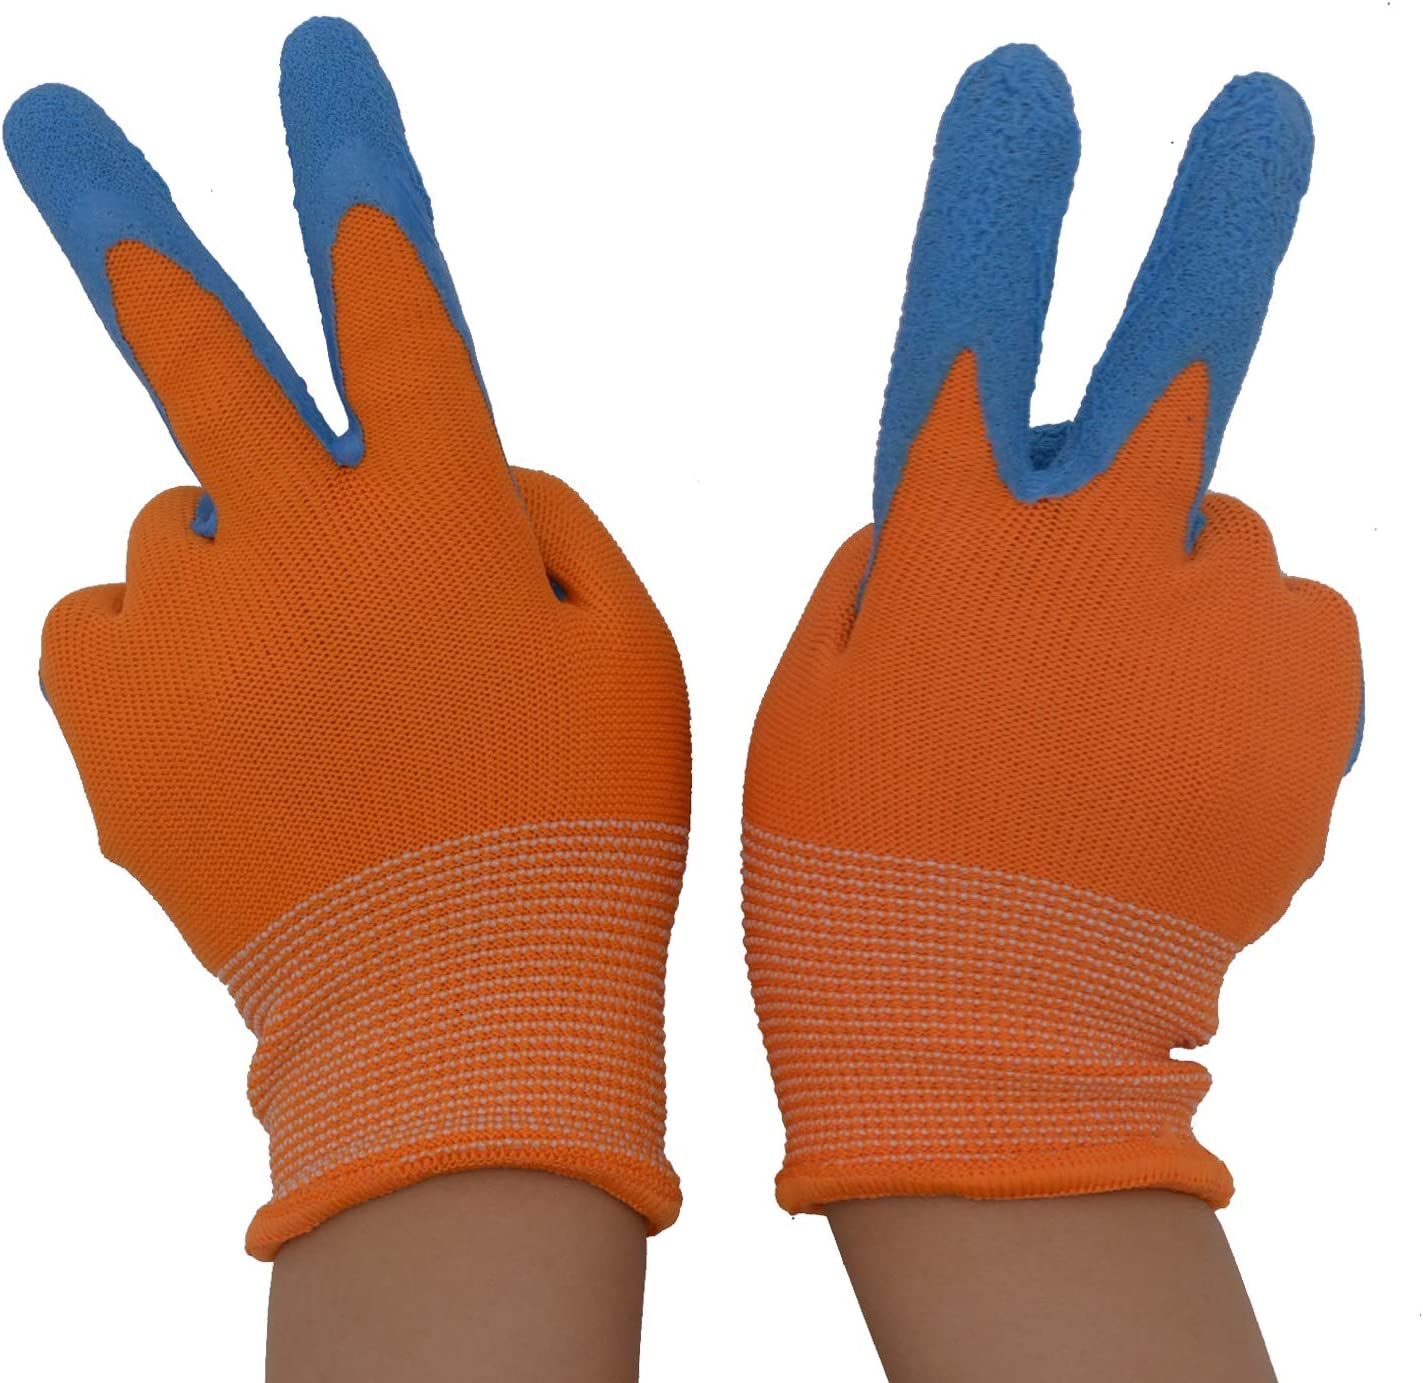 XS 2 Pairs Kids Garden Gloves for age 2-3 age 8-10 age 4-5 Foam Rubber Coated Gardening and Work Gloves for Girls Boys age 6-13